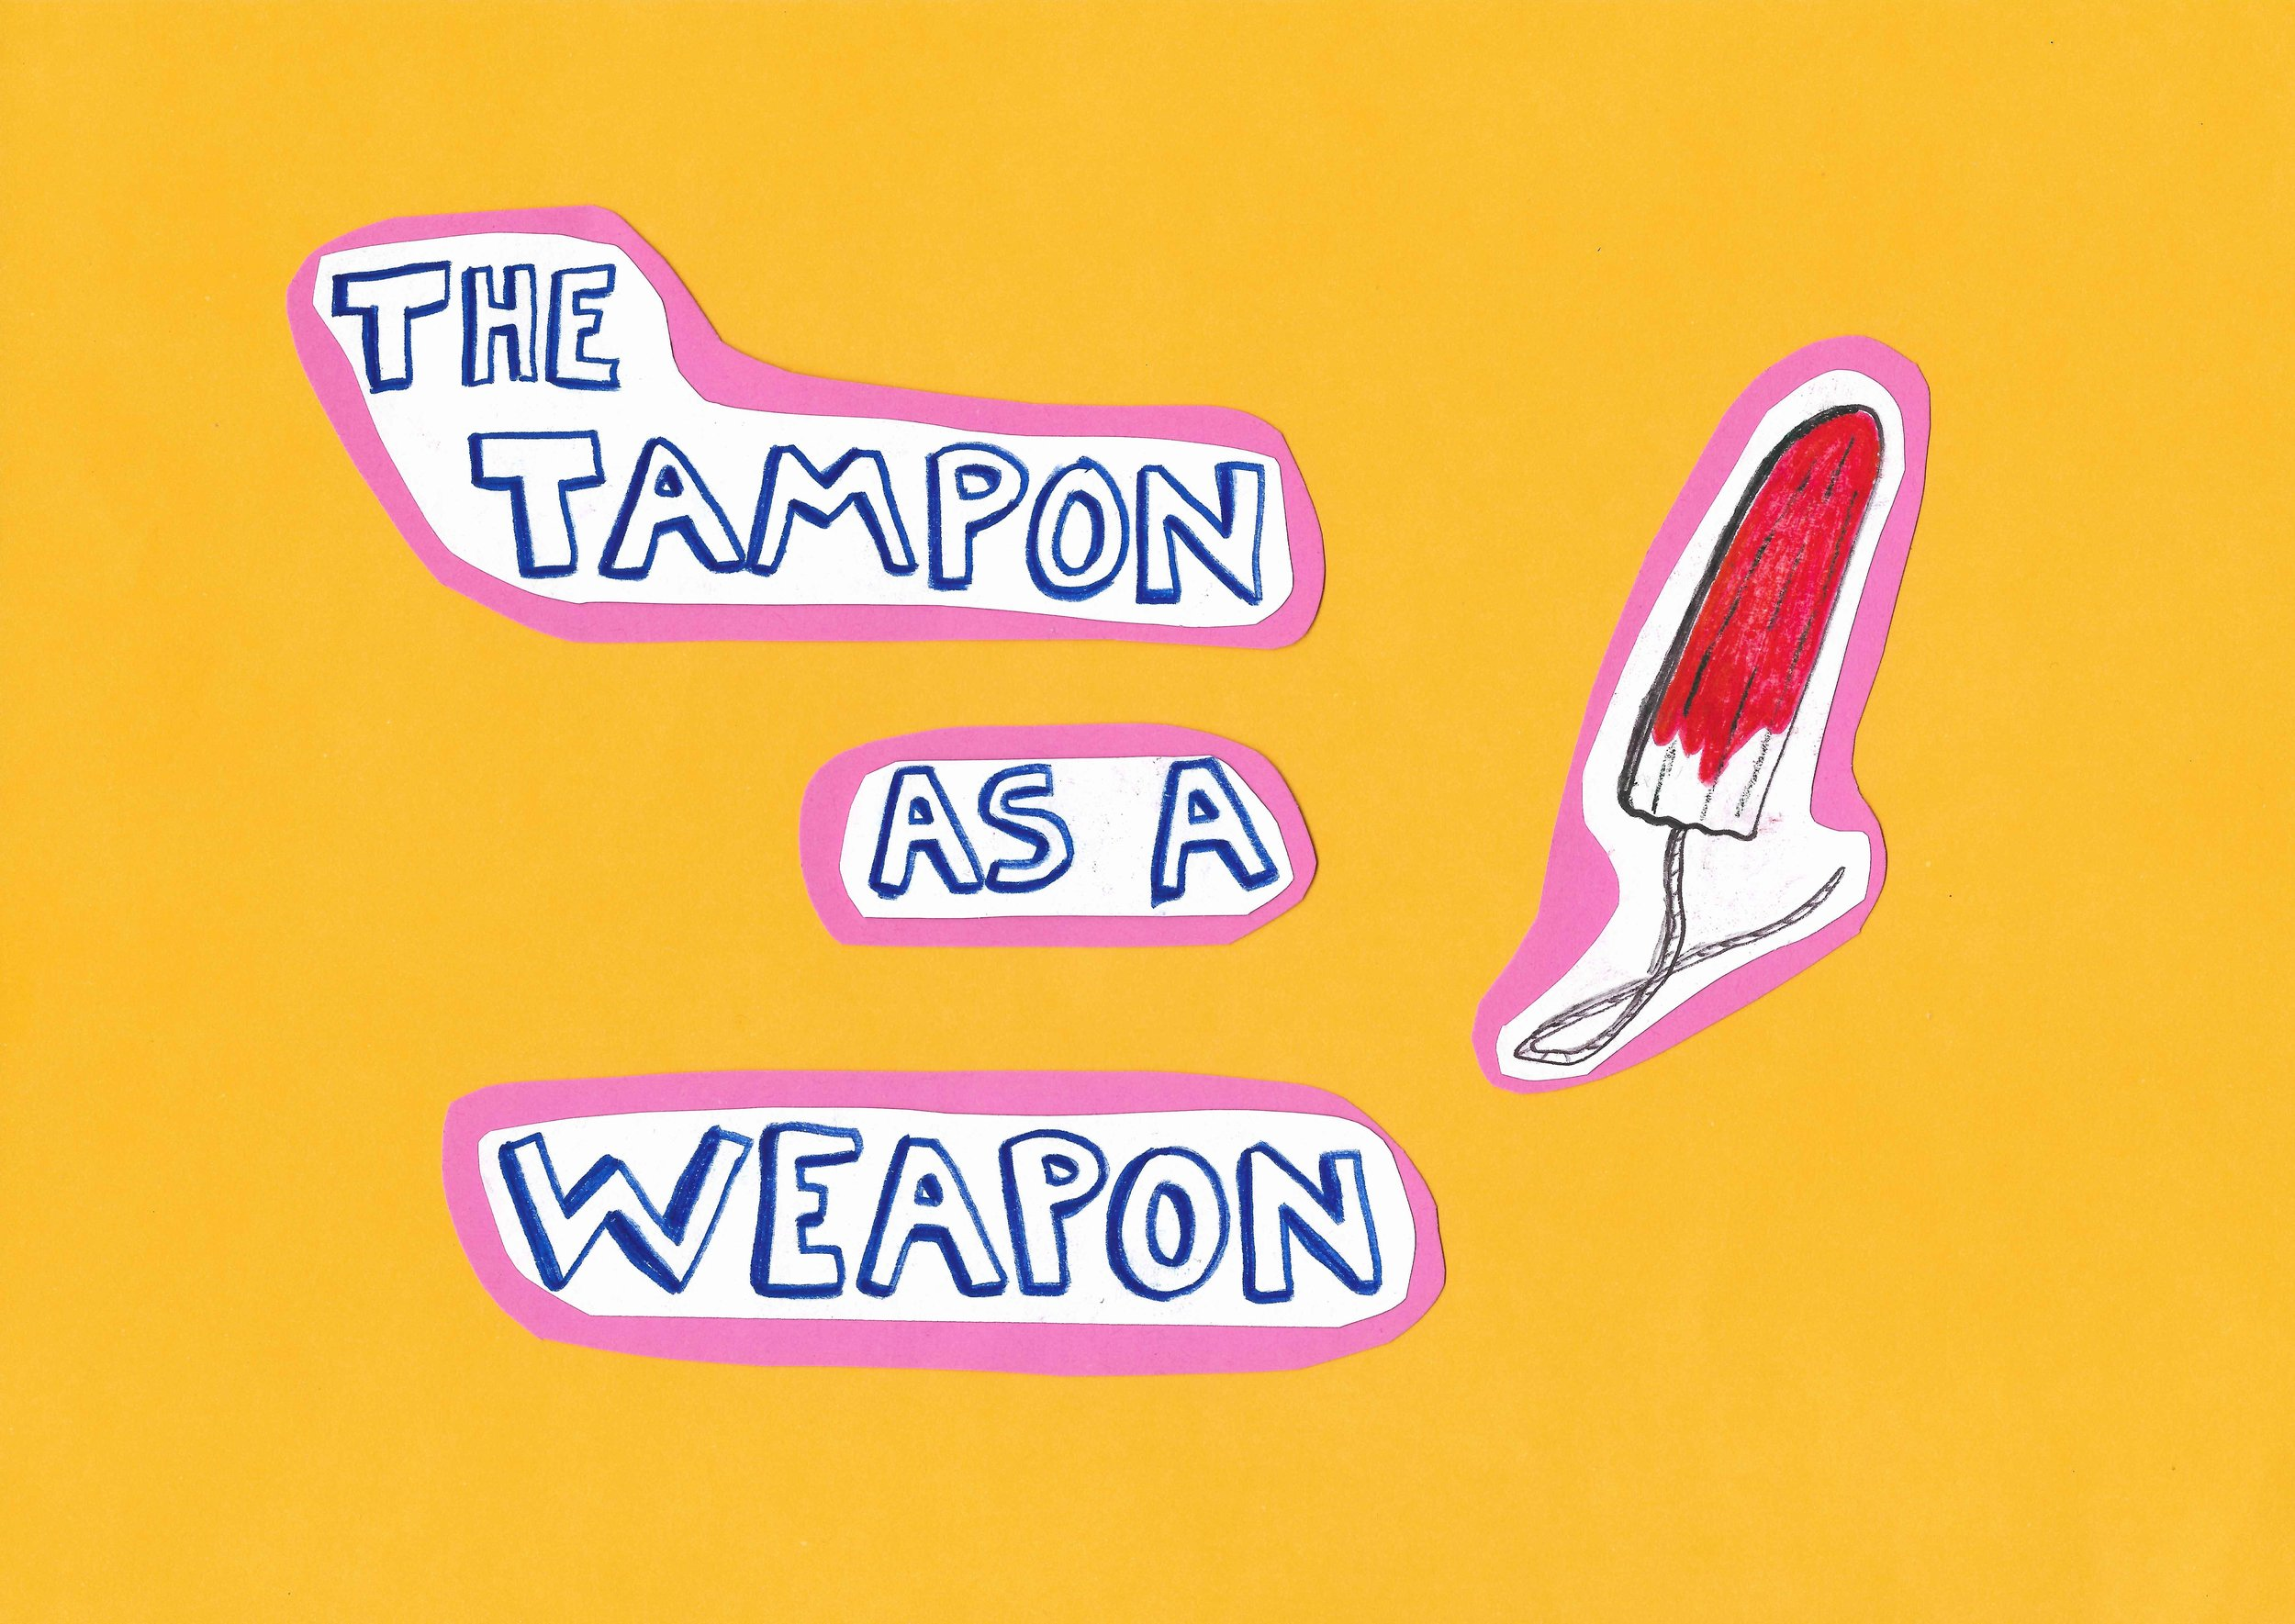 The Tampon as a Weapon image.jpg